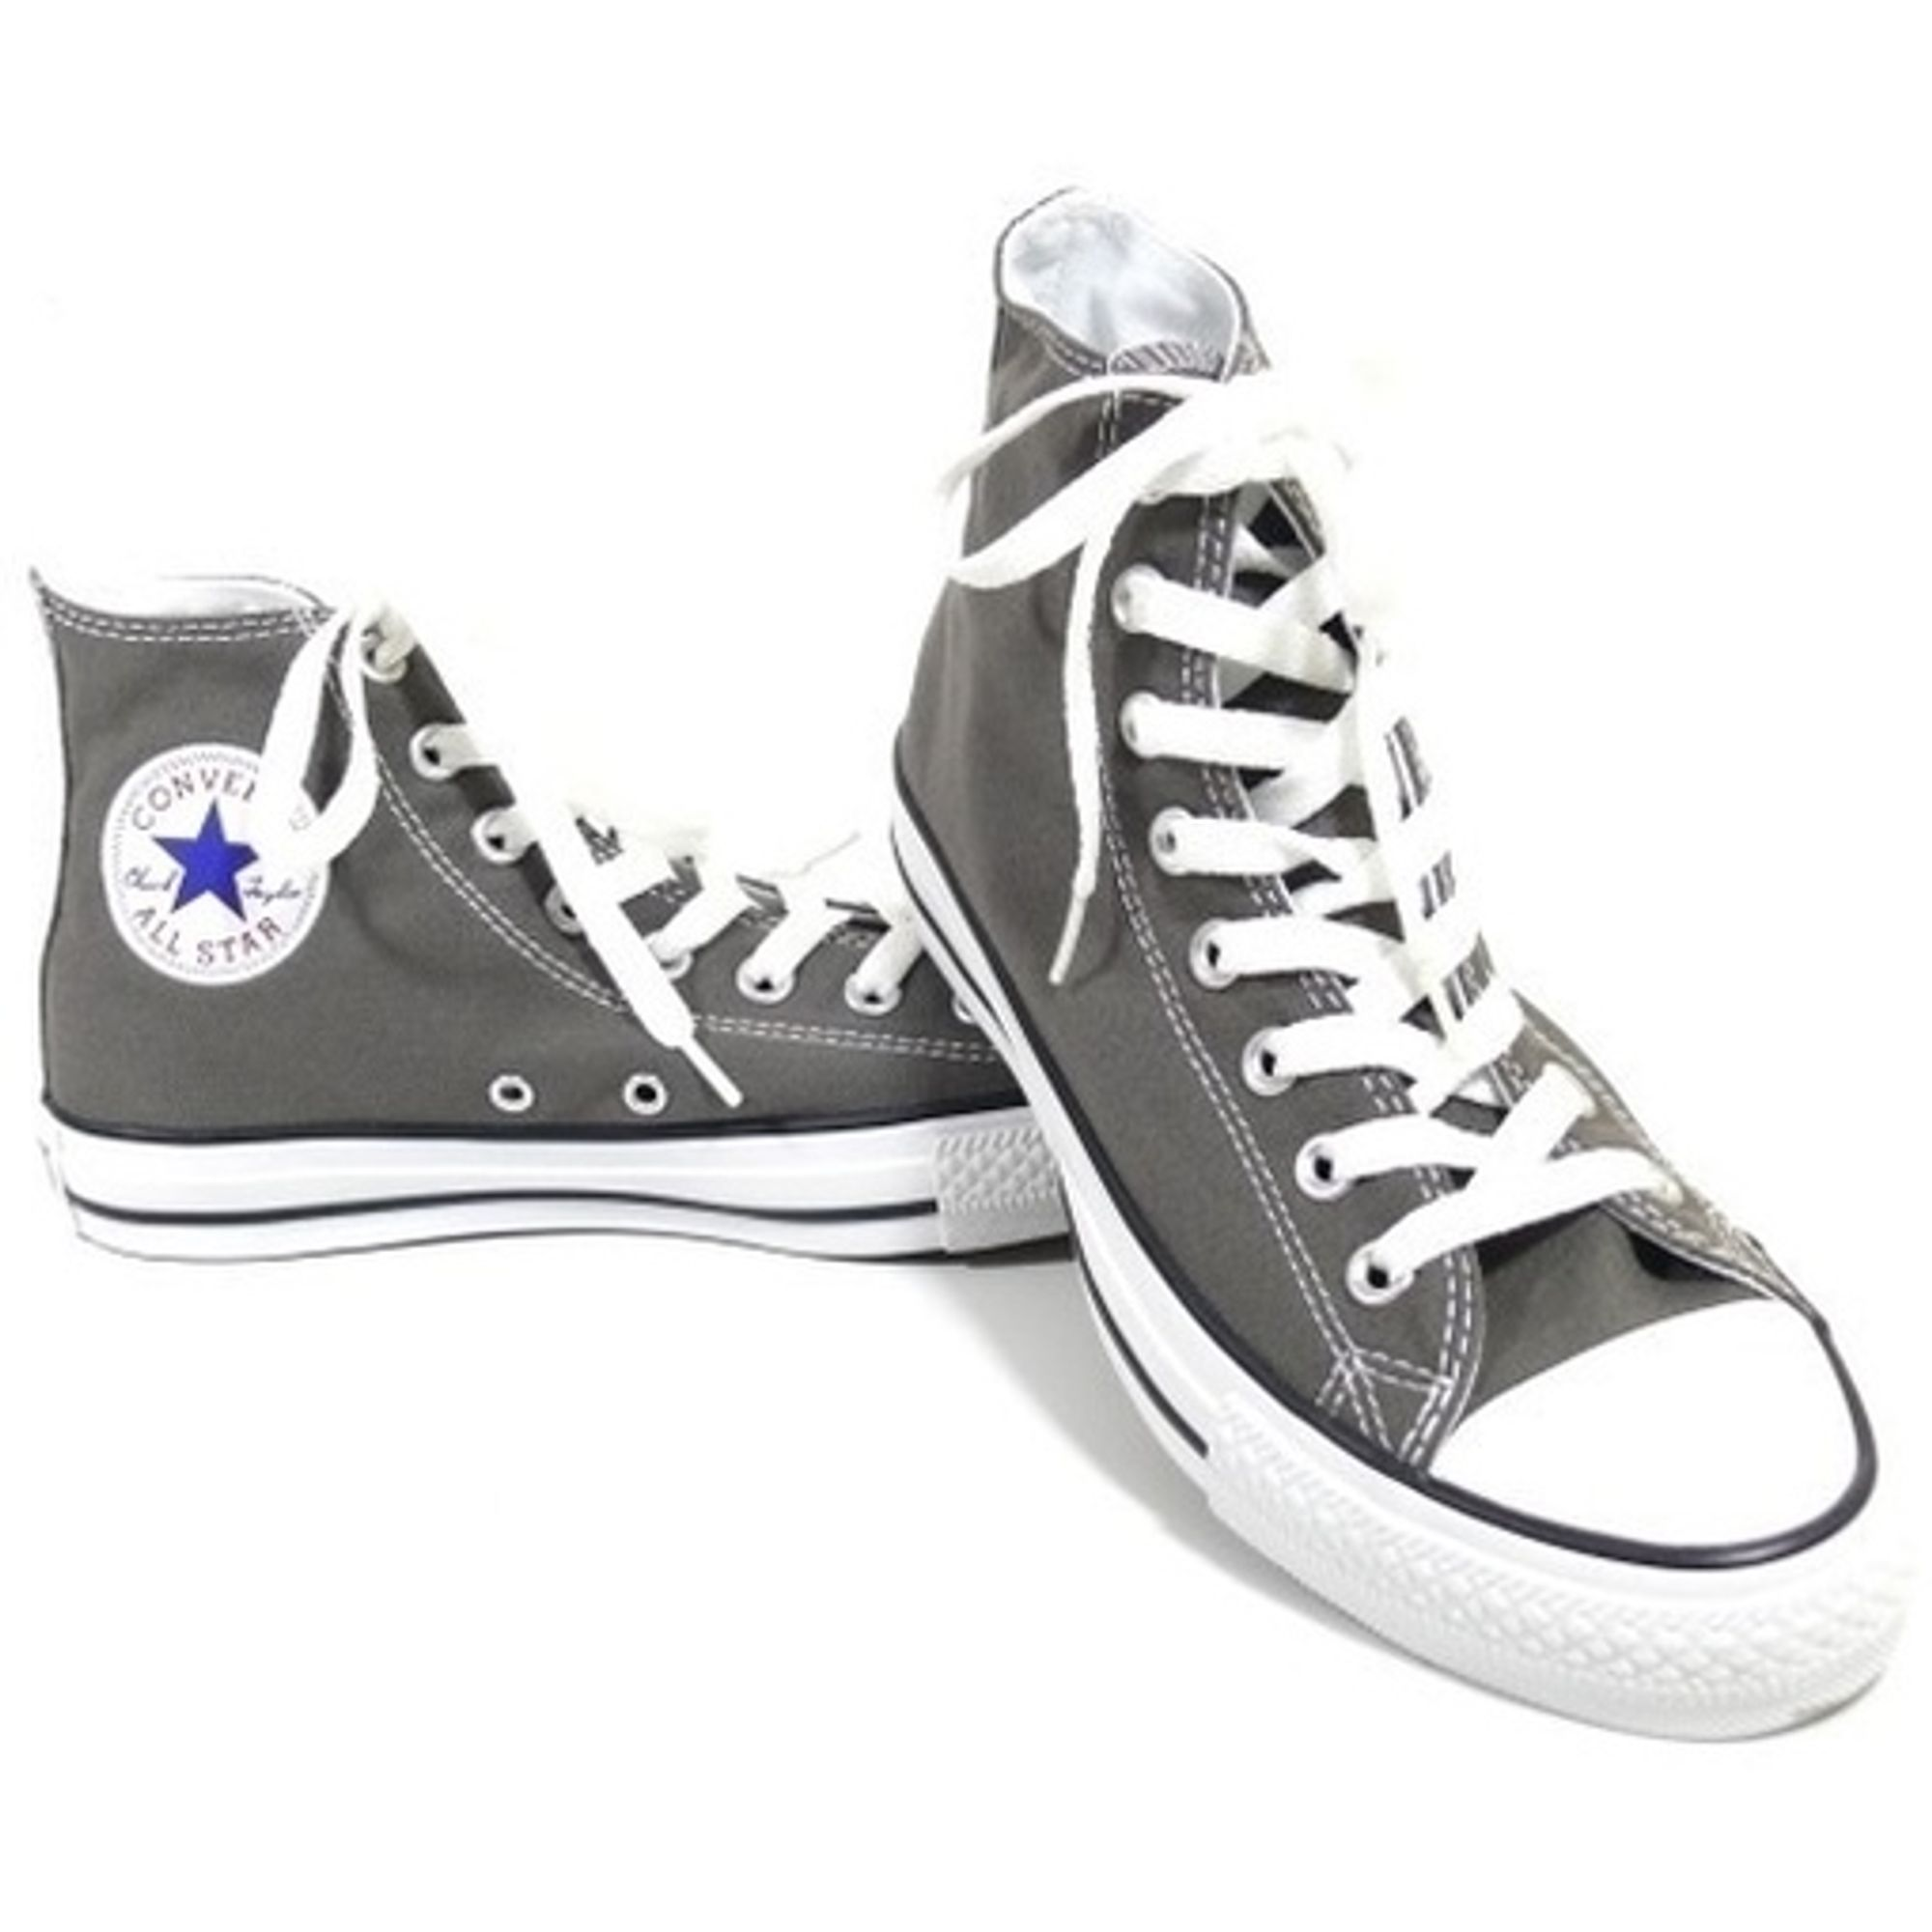 the latest b3717 2a97f Details zu CONVERSE DAMEN SCHUHE ALL STAR HI GRAU 1J793 CHUCKS SNEAKERS GR.  37,5